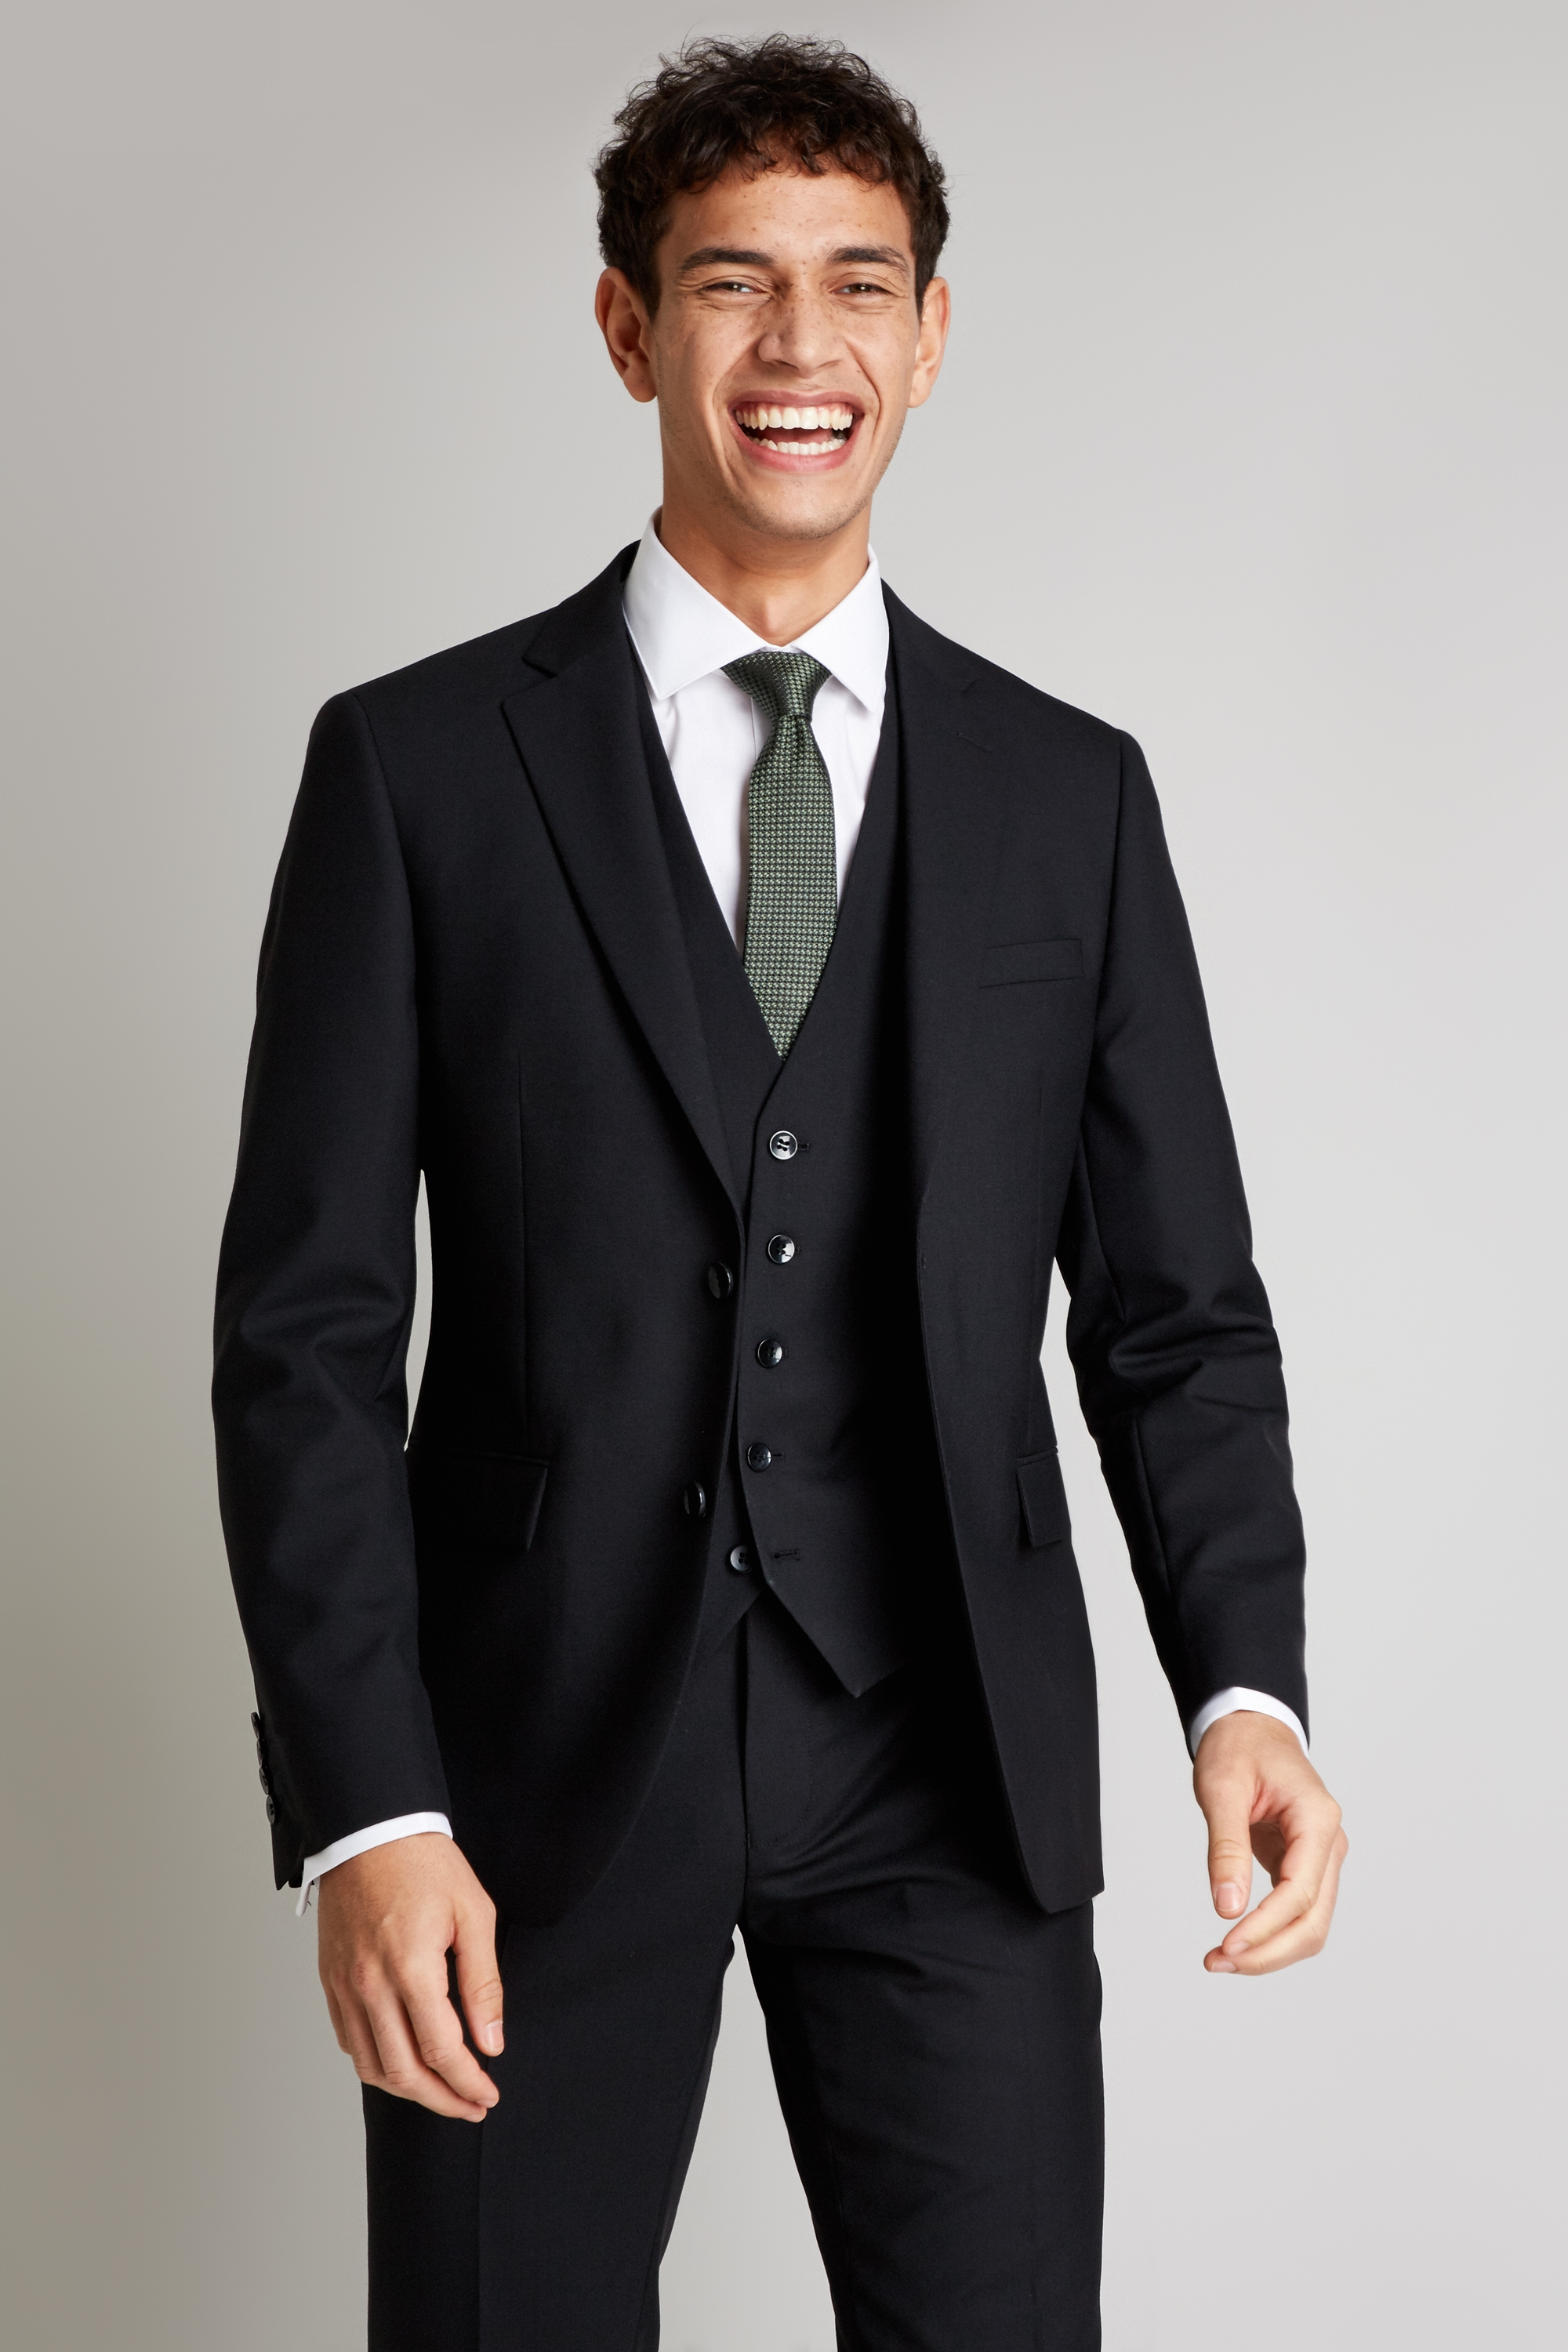 brand quality hot-selling clearance world-wide selection of Details about DKNY Mens Black Suit Jacket Slim Fit Single Breasted Wool  Blazer 2 Button